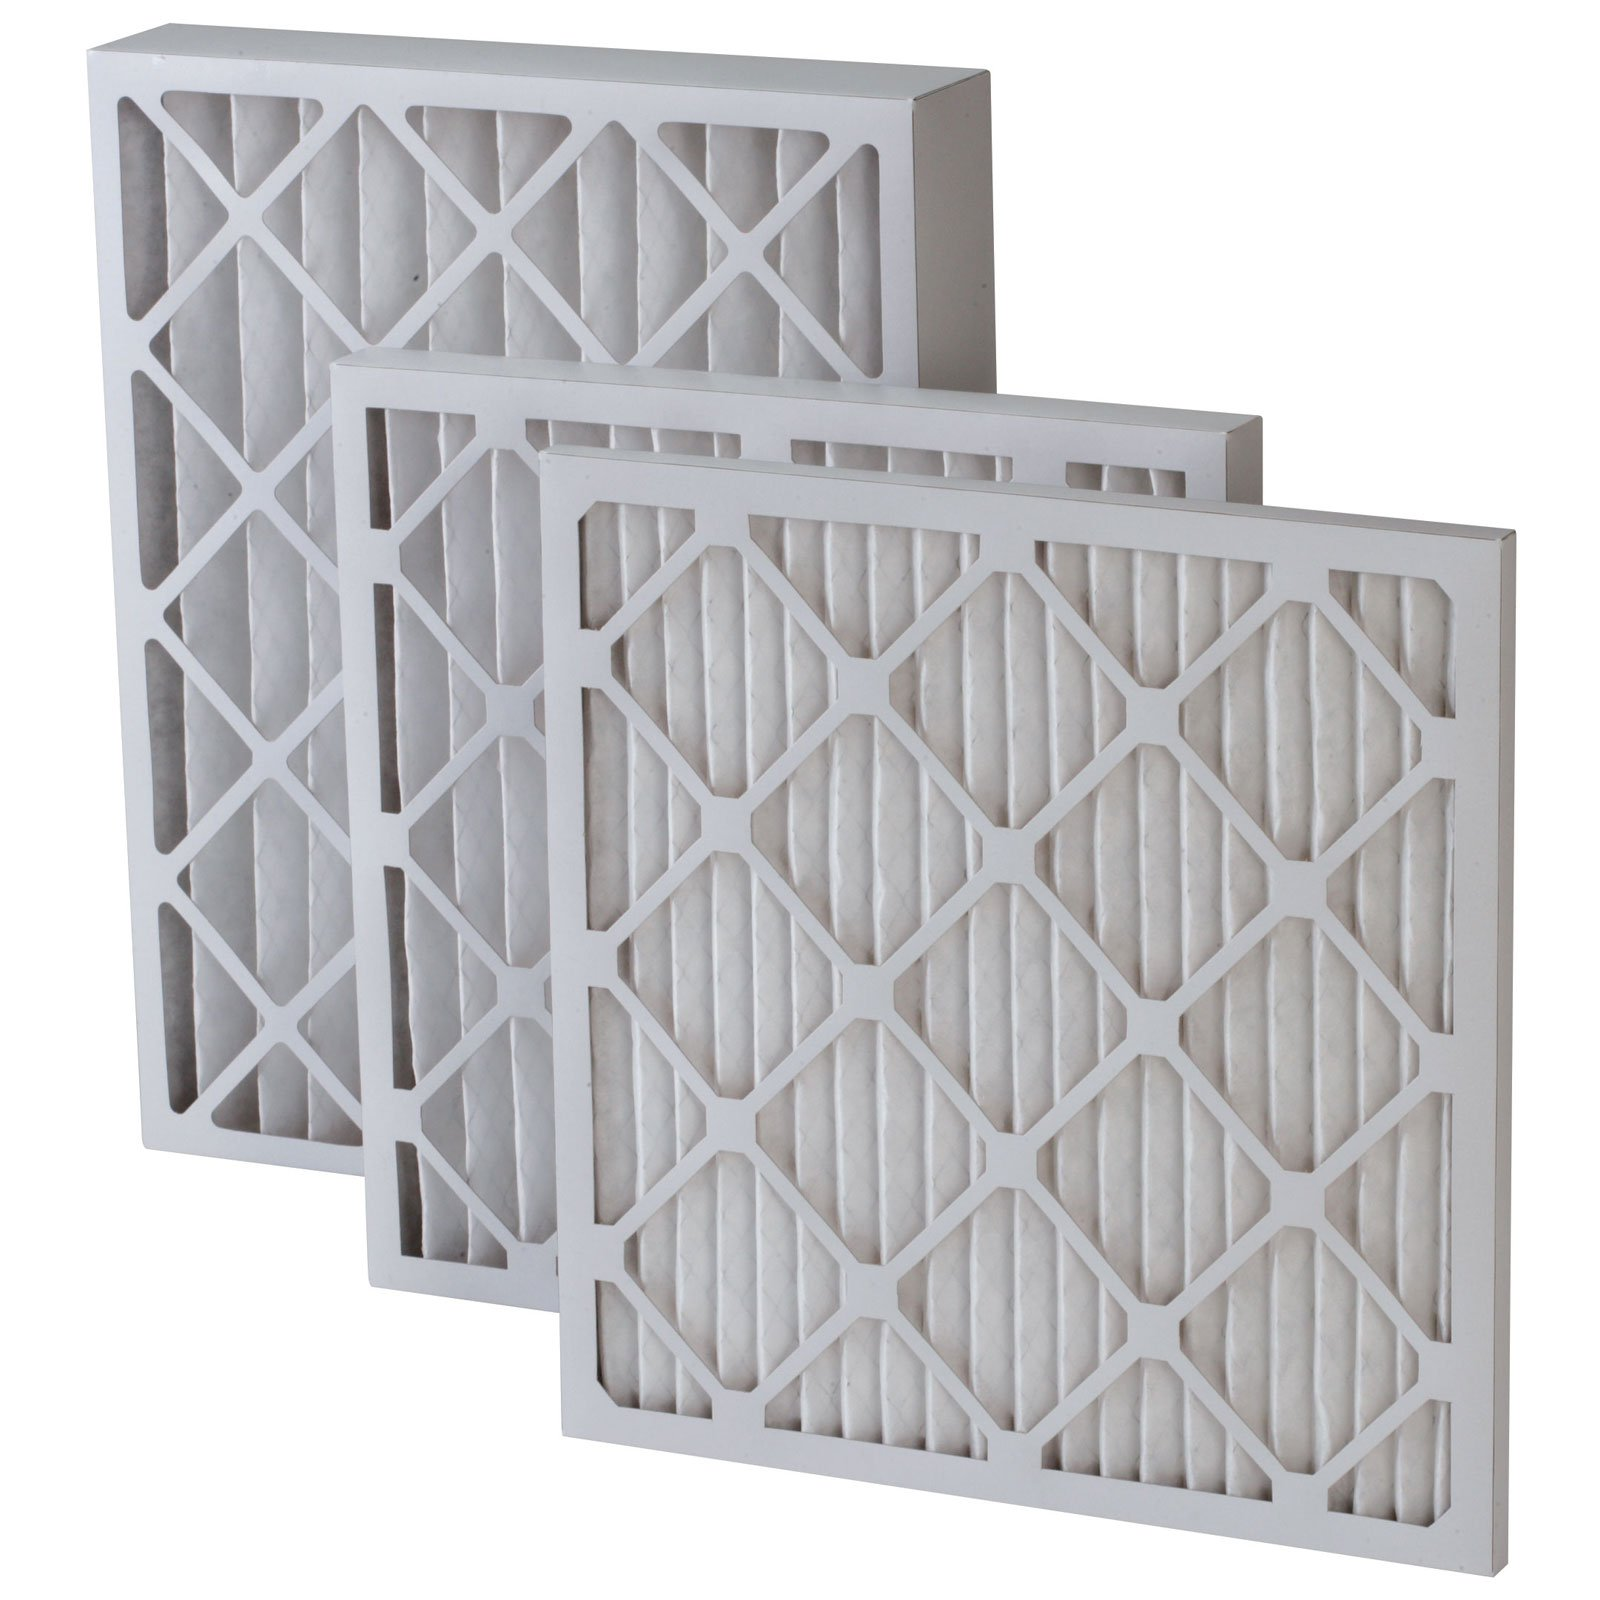 Ac Filters Orlando Florida Indoor Air Quality Solutions Iaq Blog